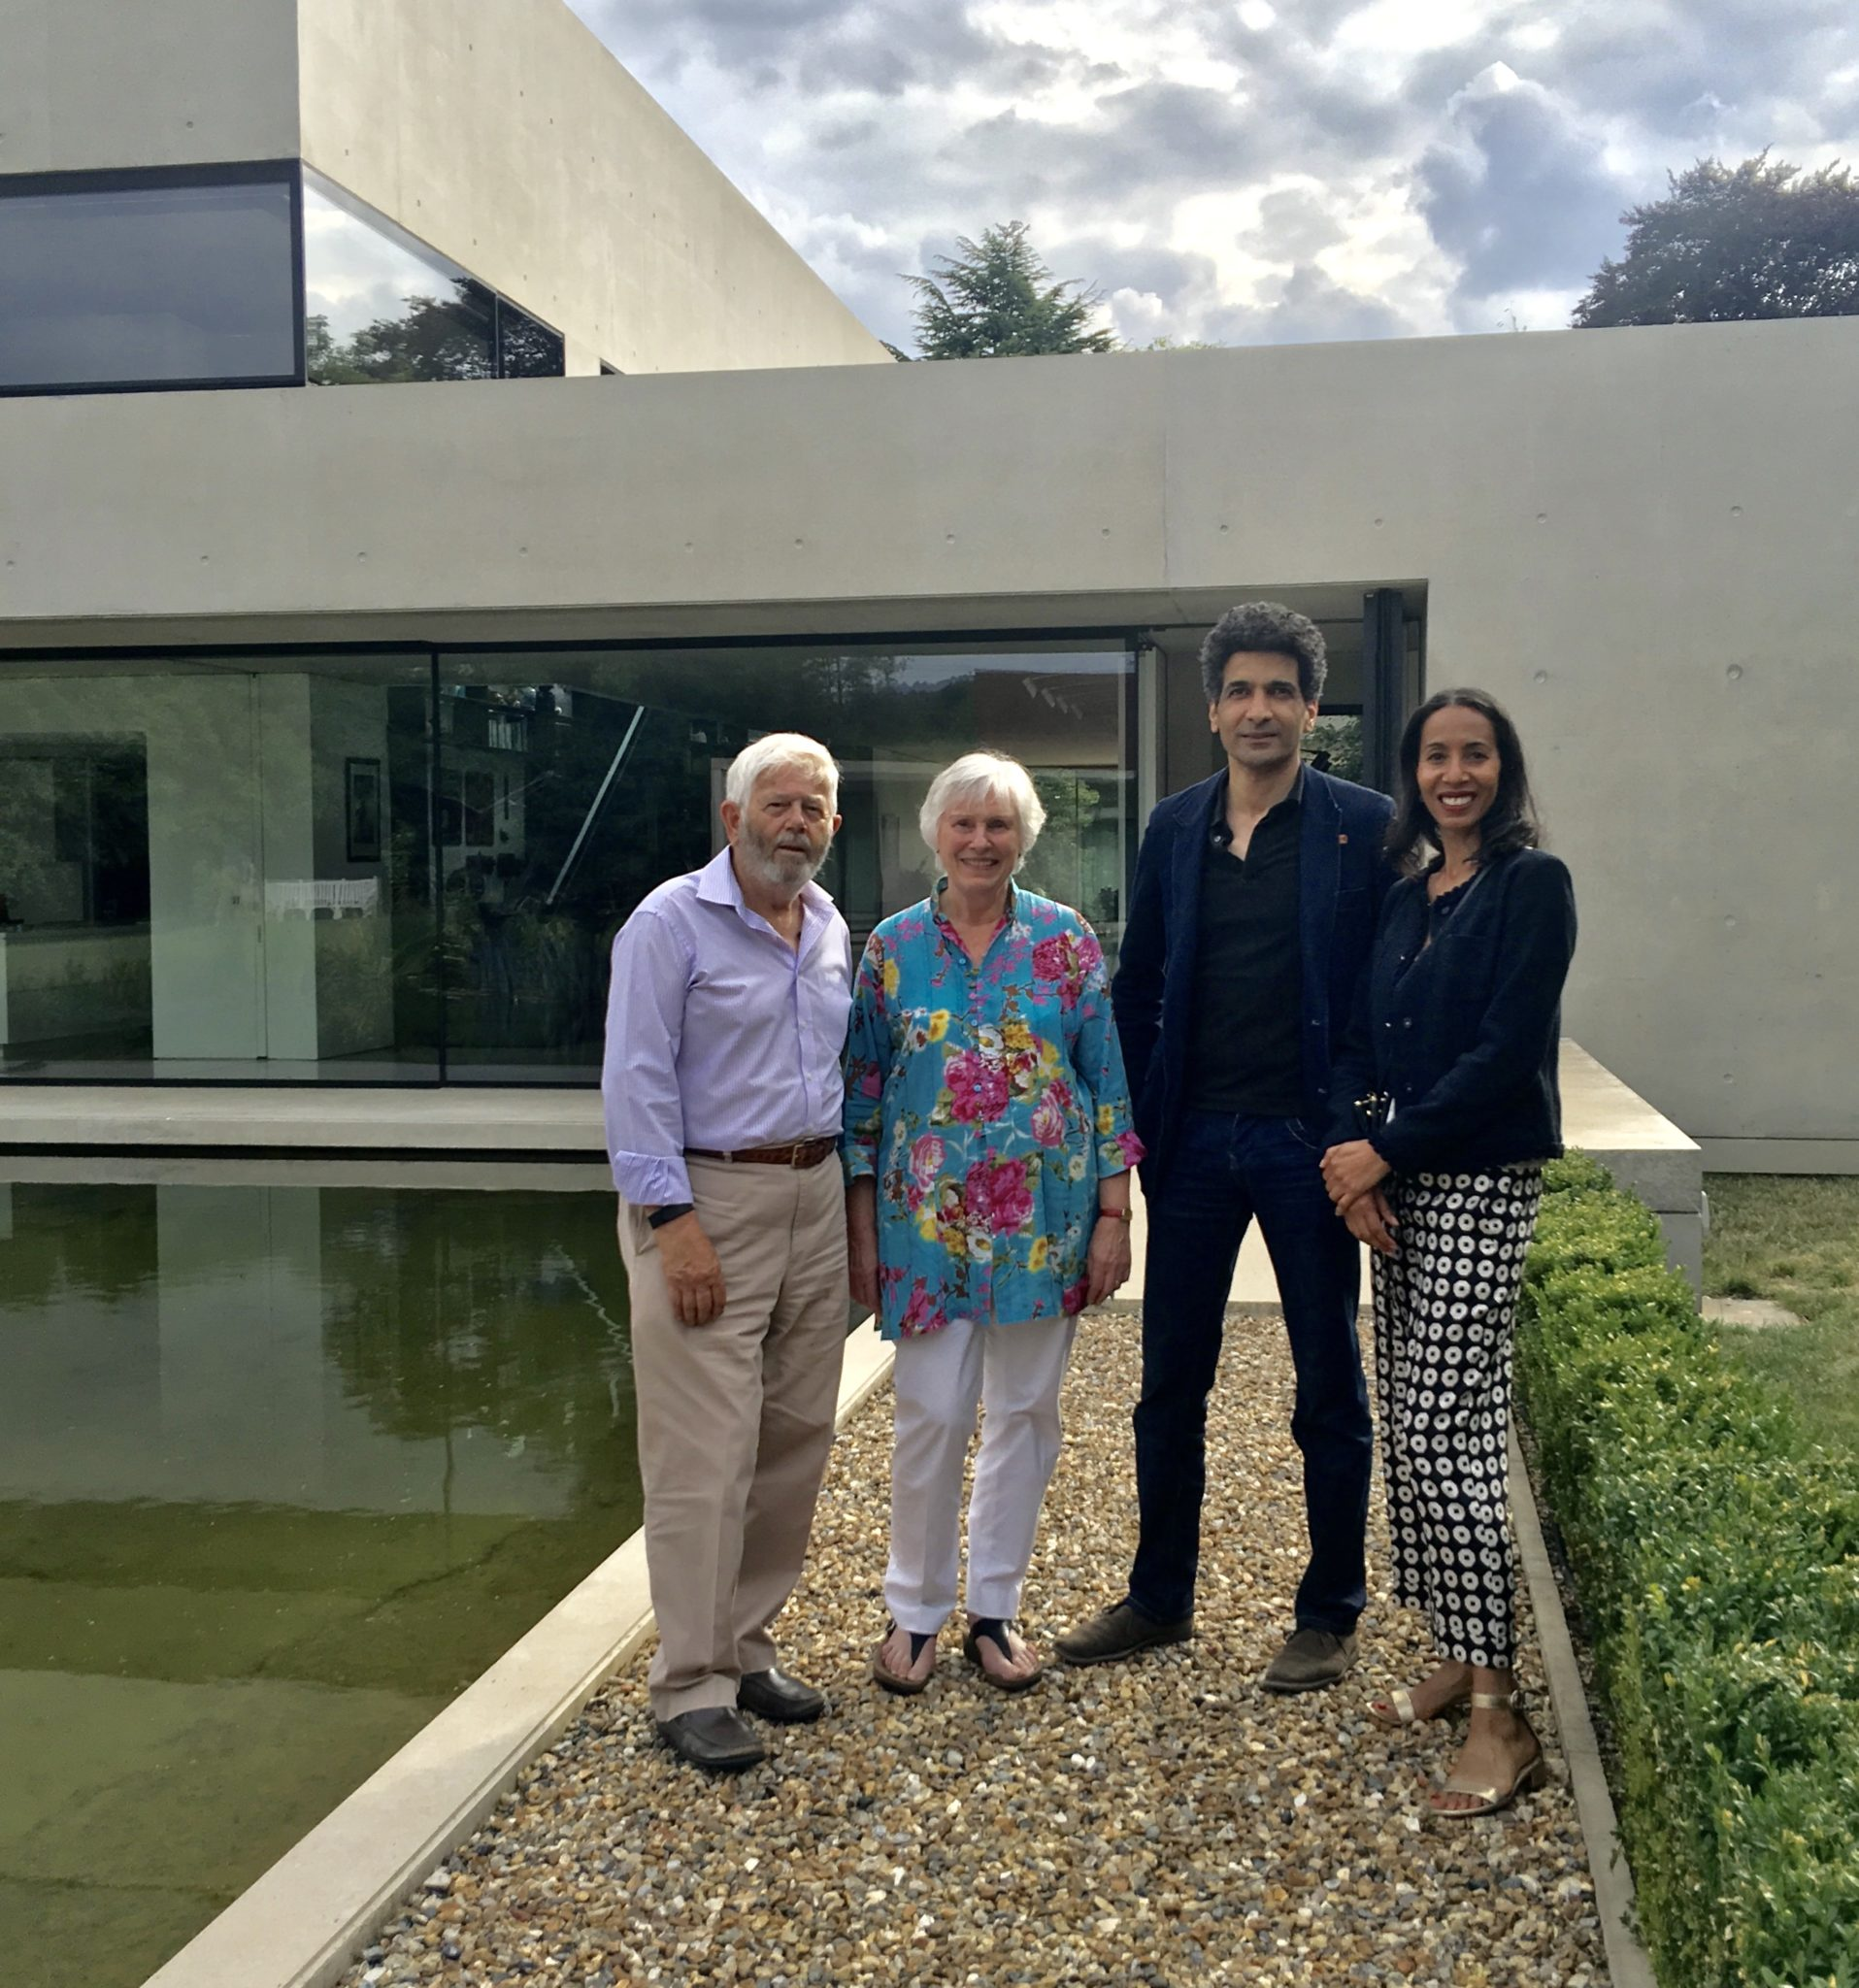 The owners and architect, Amin Taha, of Pheasants House. Shortlisted for the RIBA House of the Year 2018.